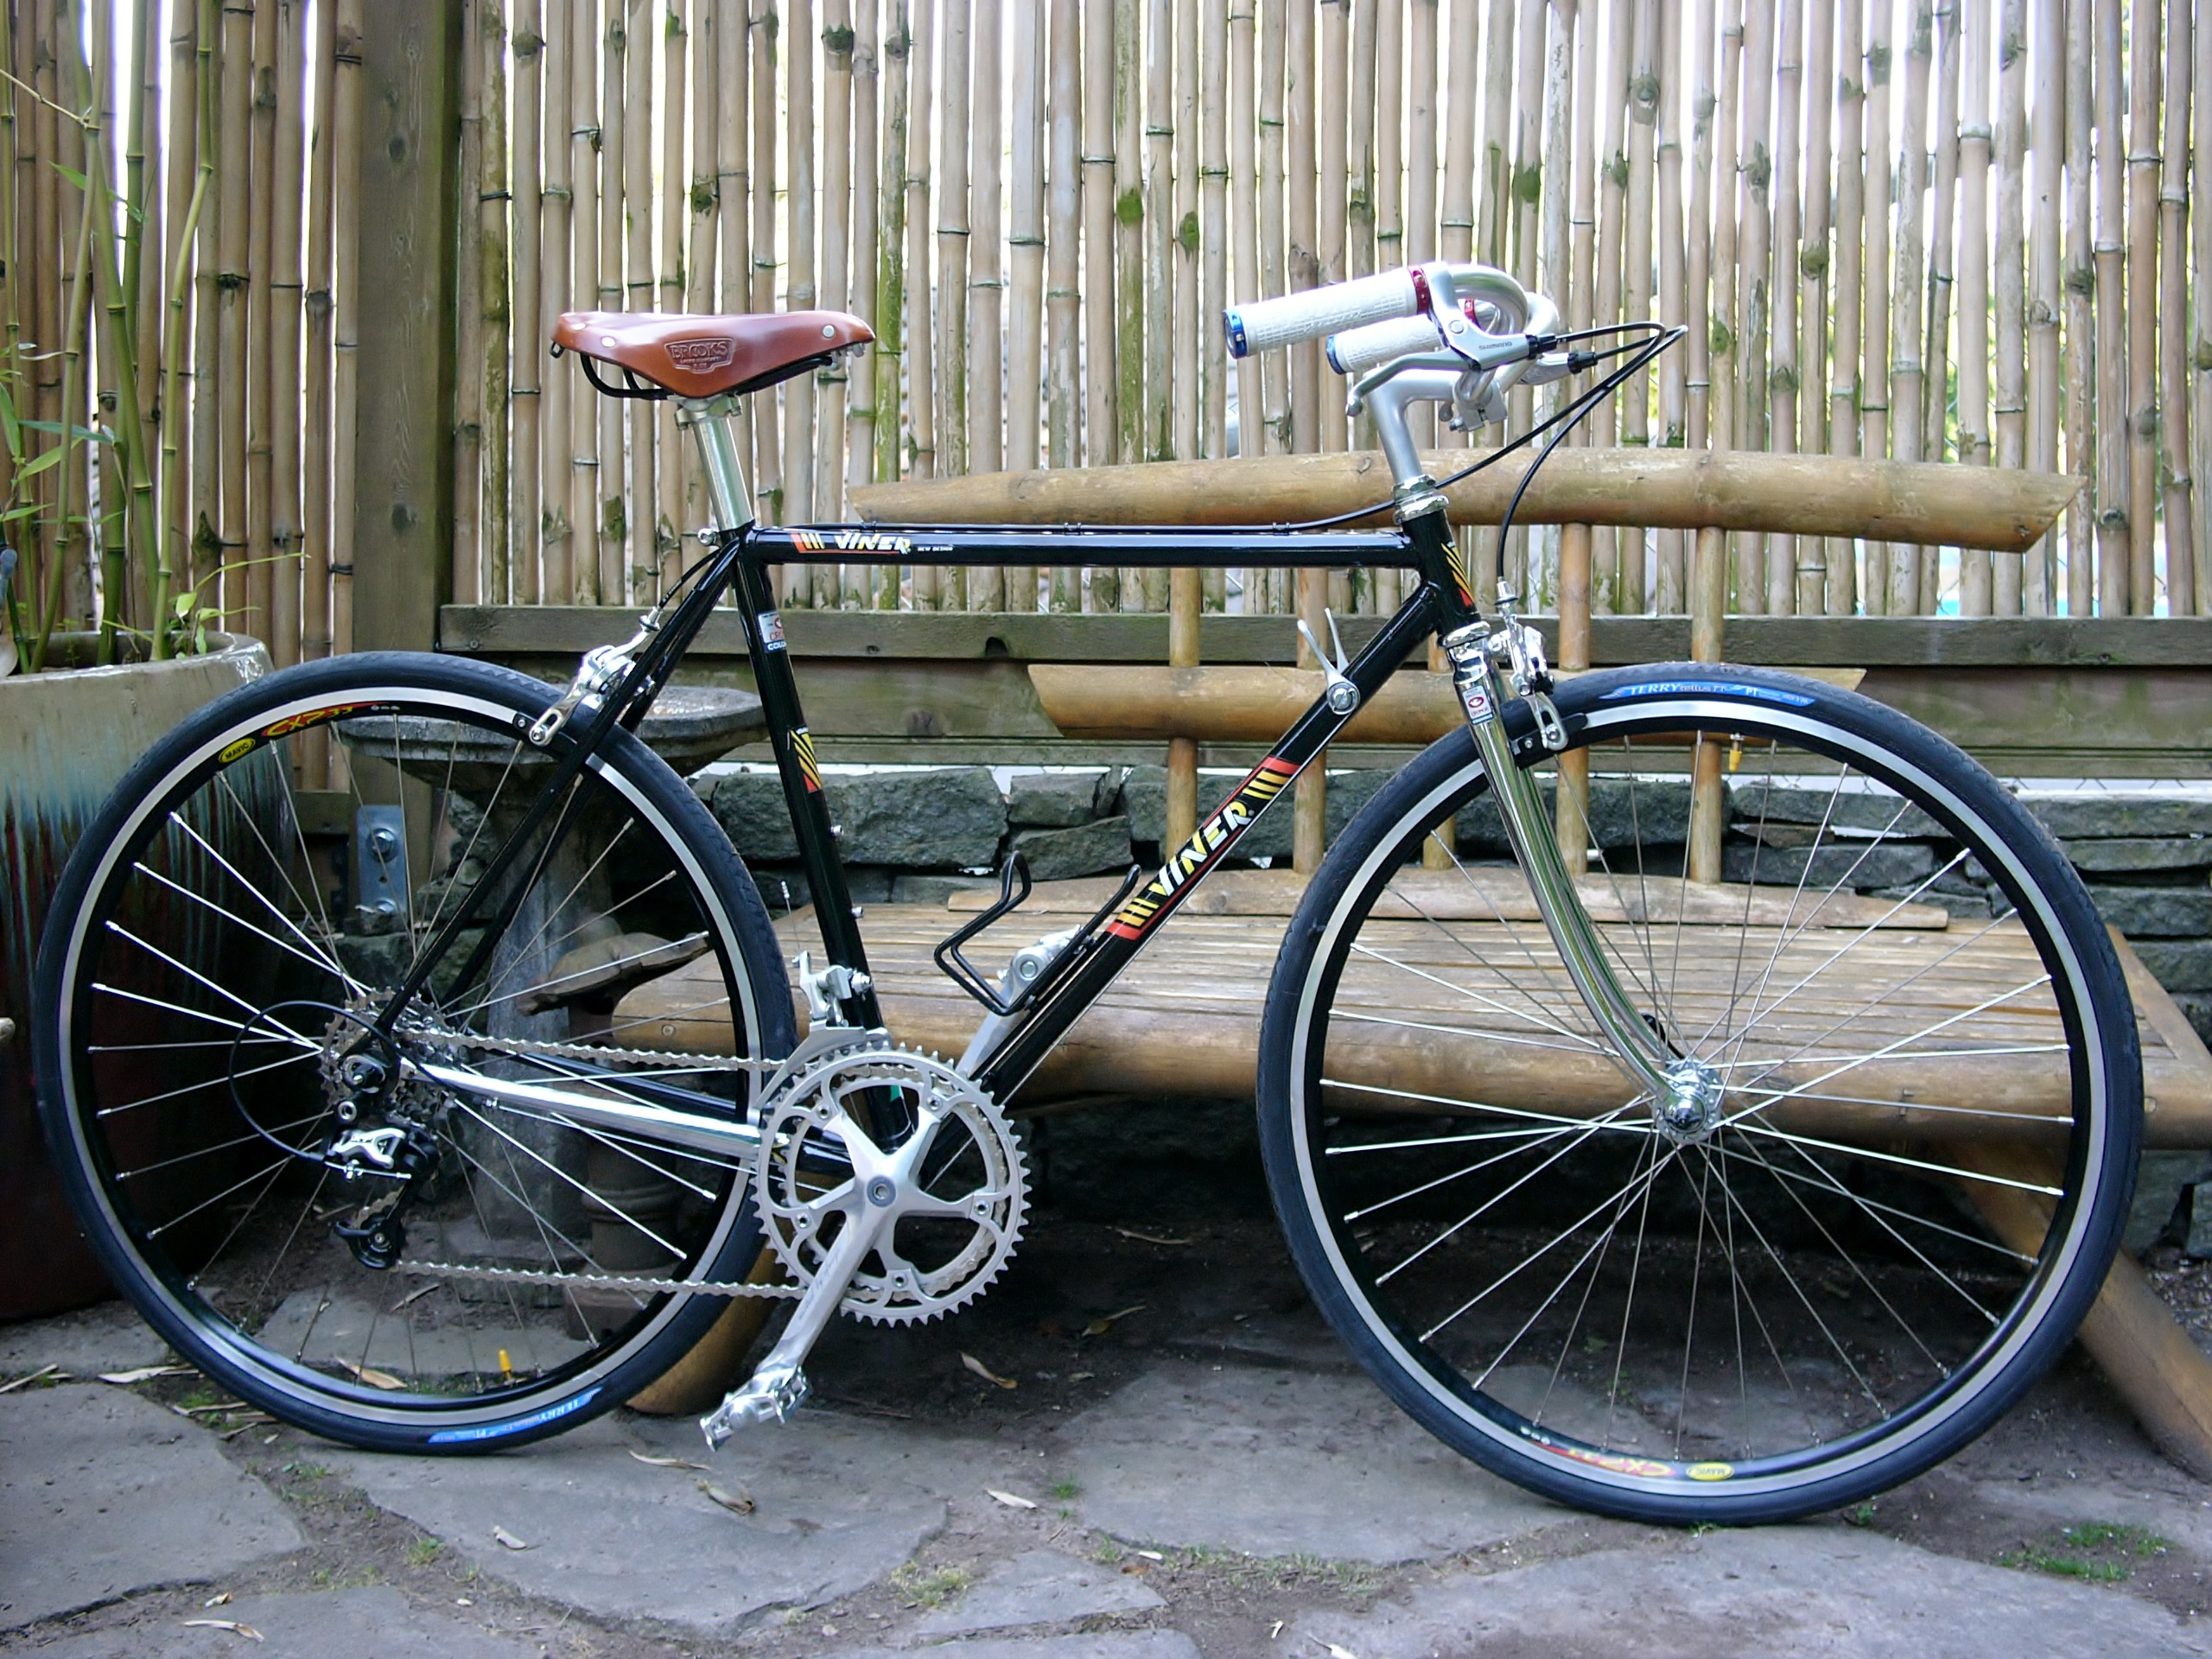 Vintage Italian Bicycle Restoring Vintage Bicycles From The Hand